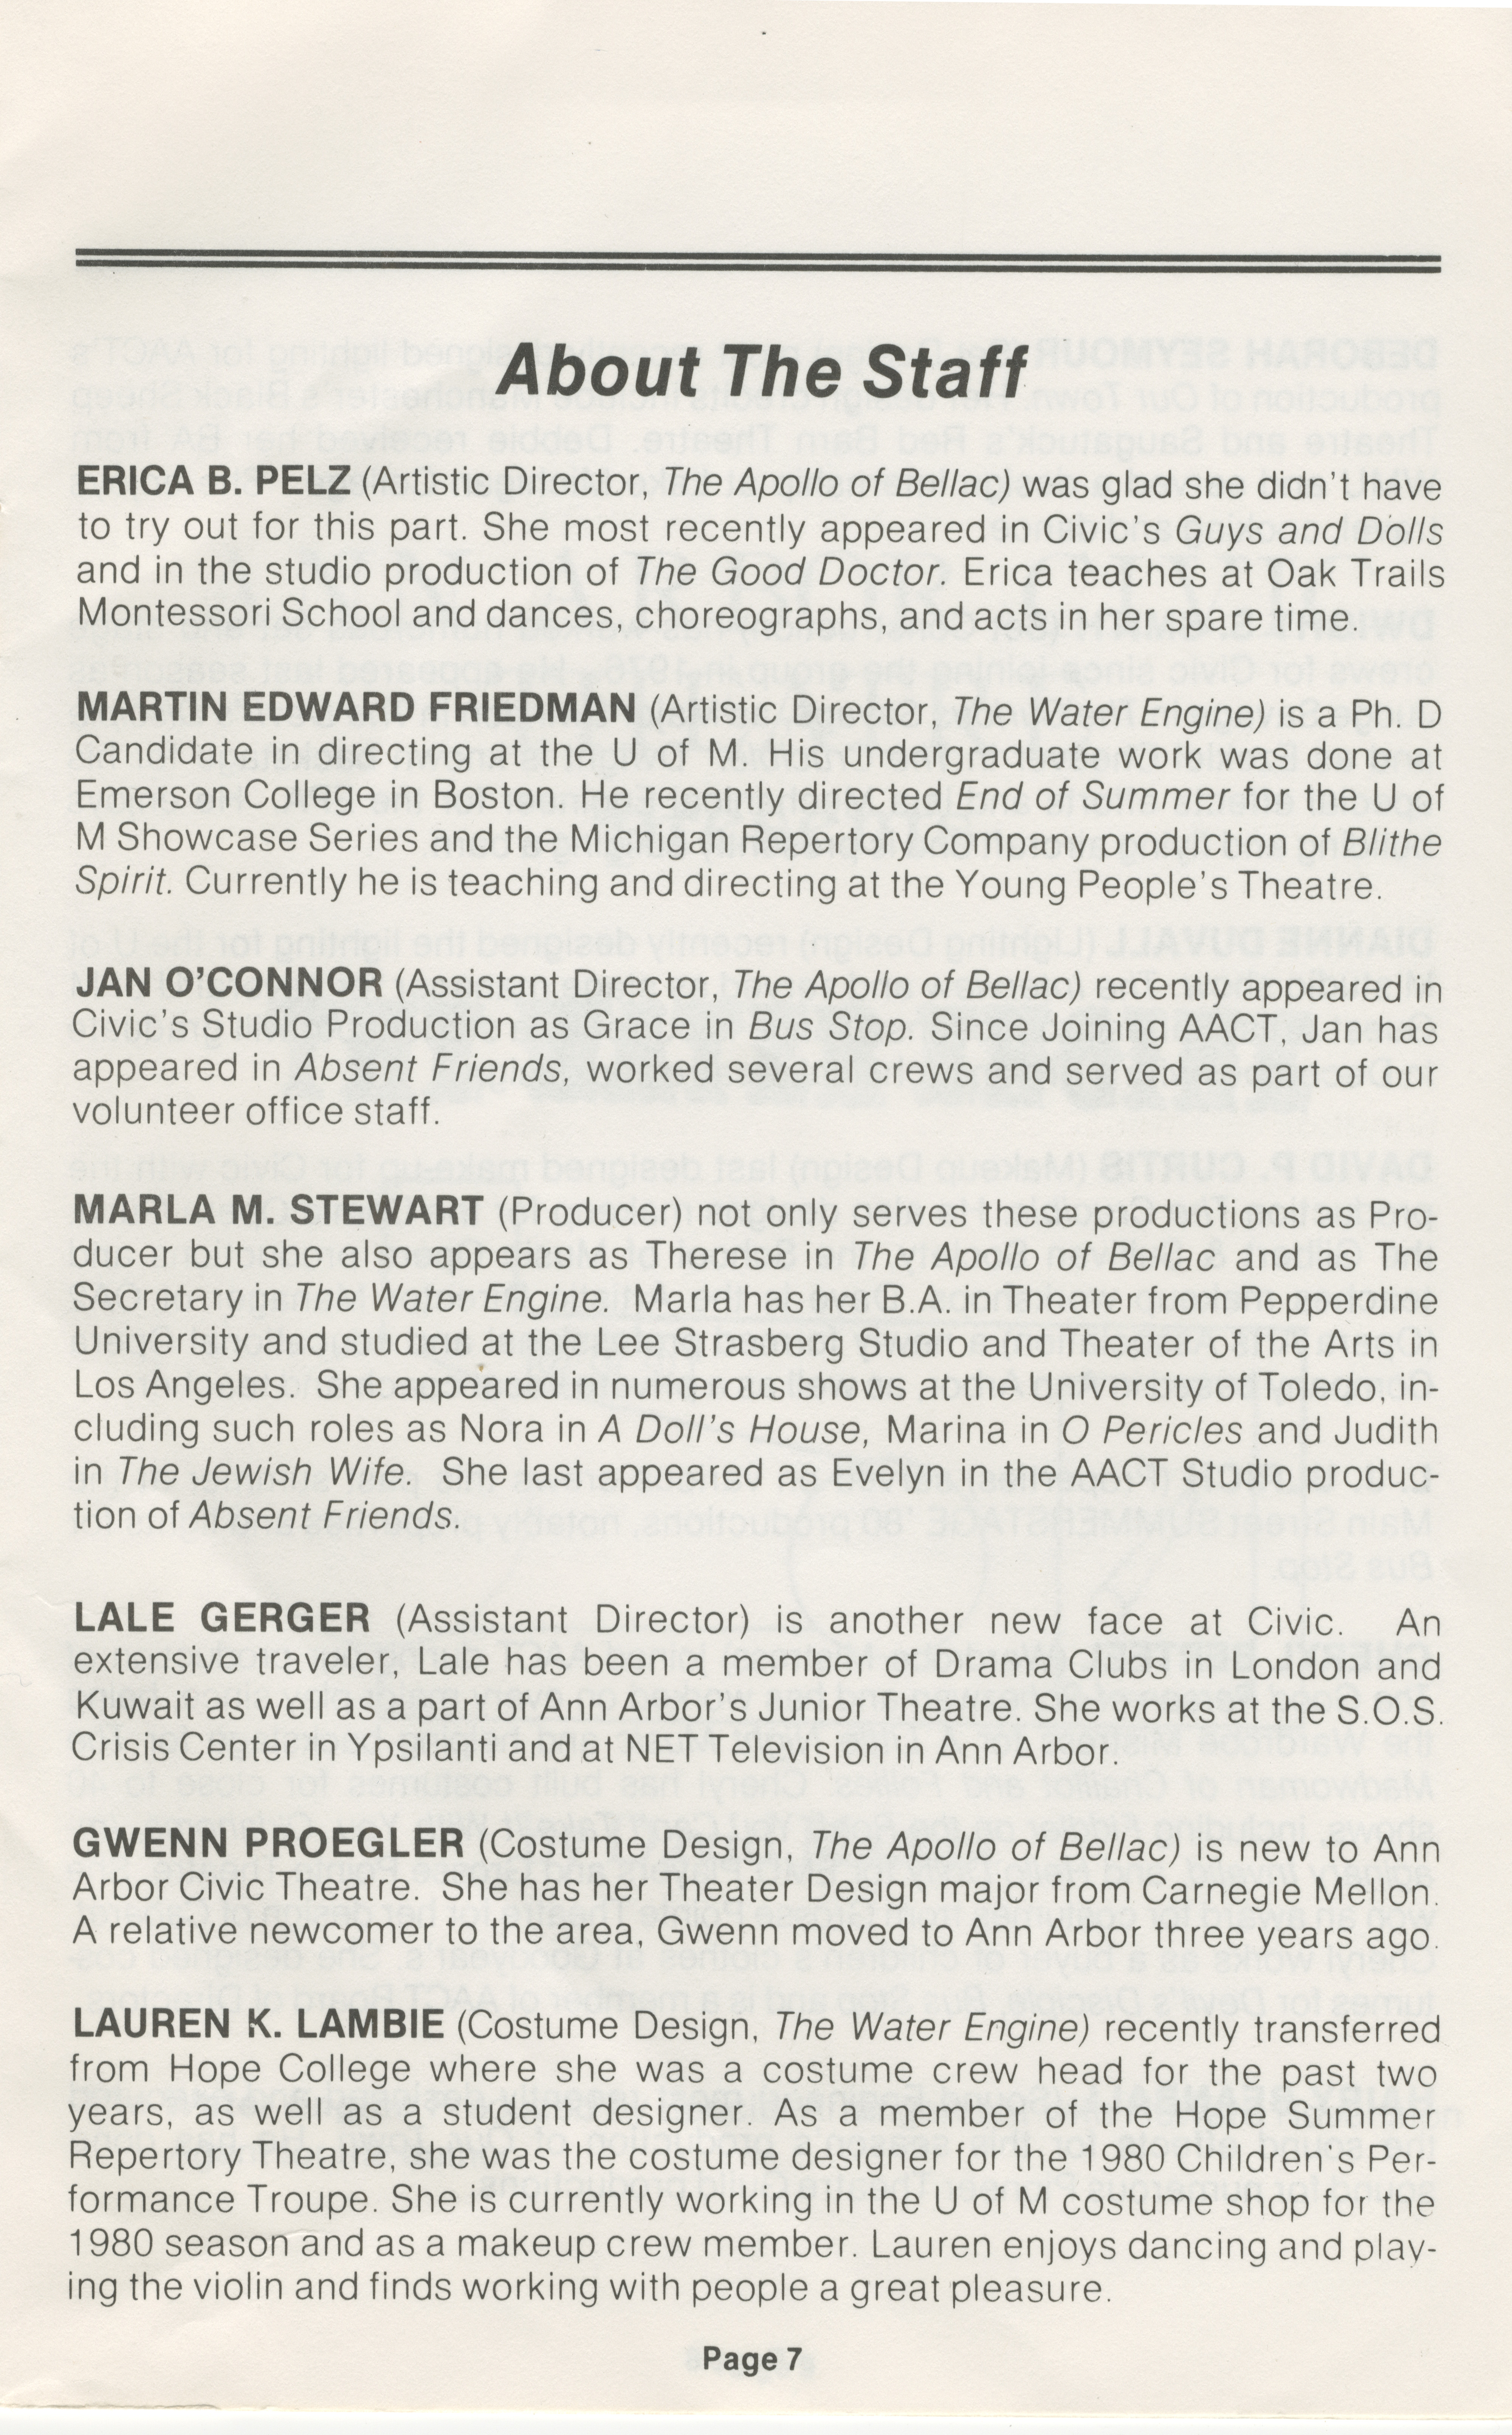 Ann Arbor Civic Theatre Program: The Water Engine The Apollo of Bellac, December 17, 1980 image